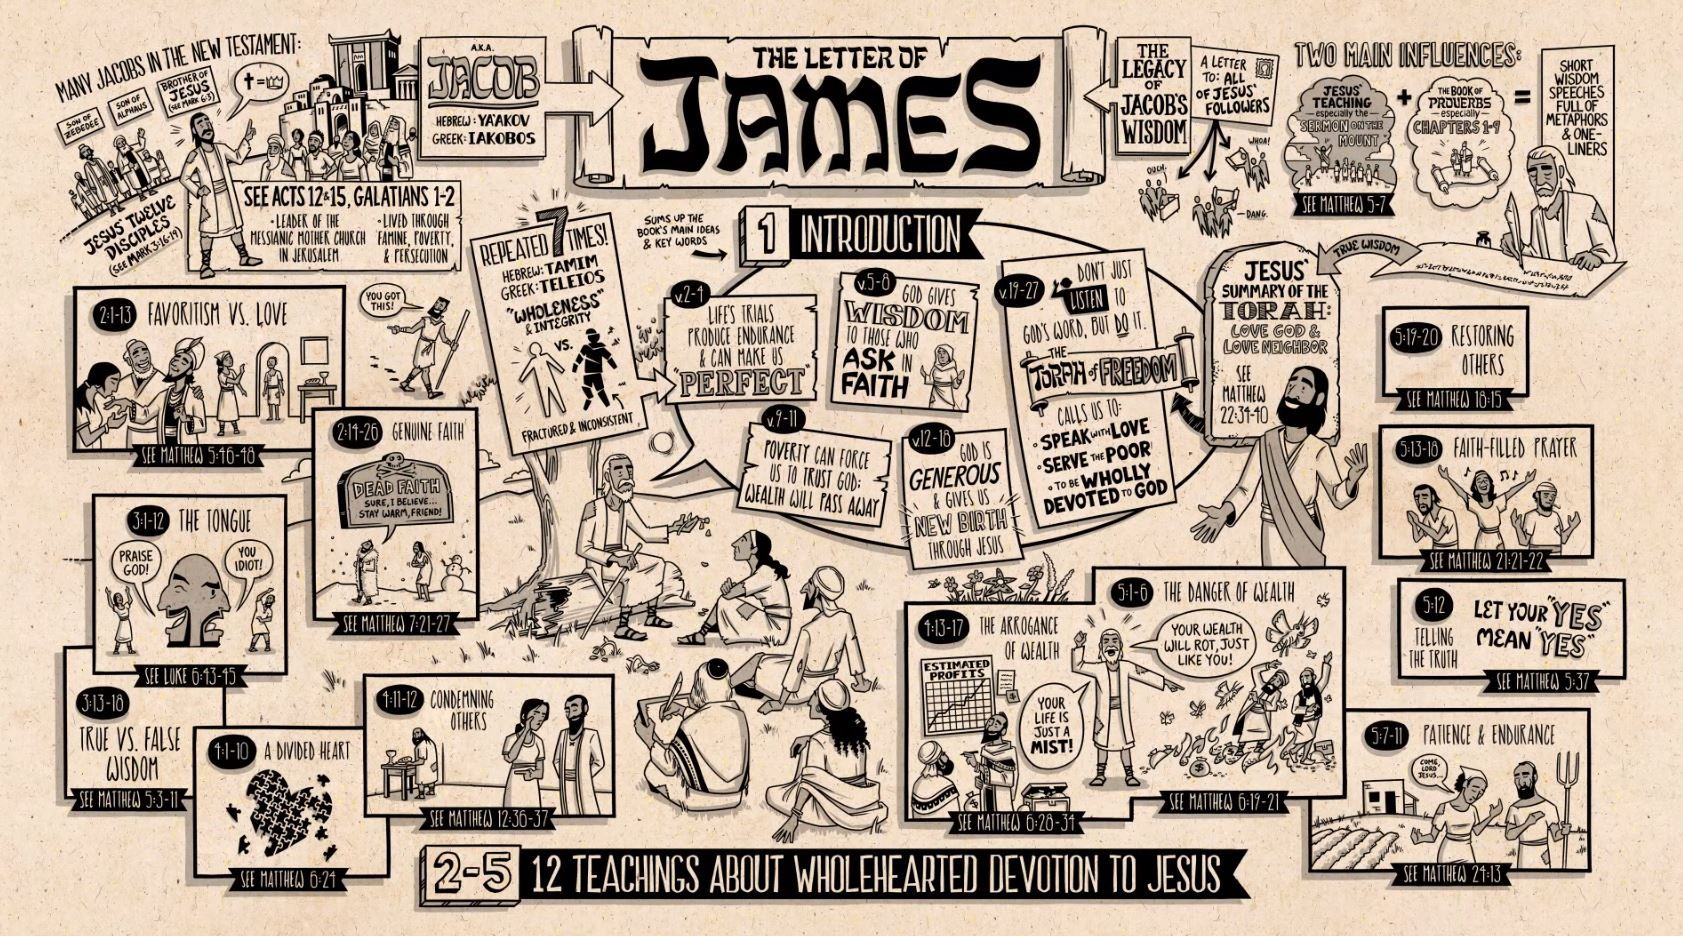 James Synopsis Video